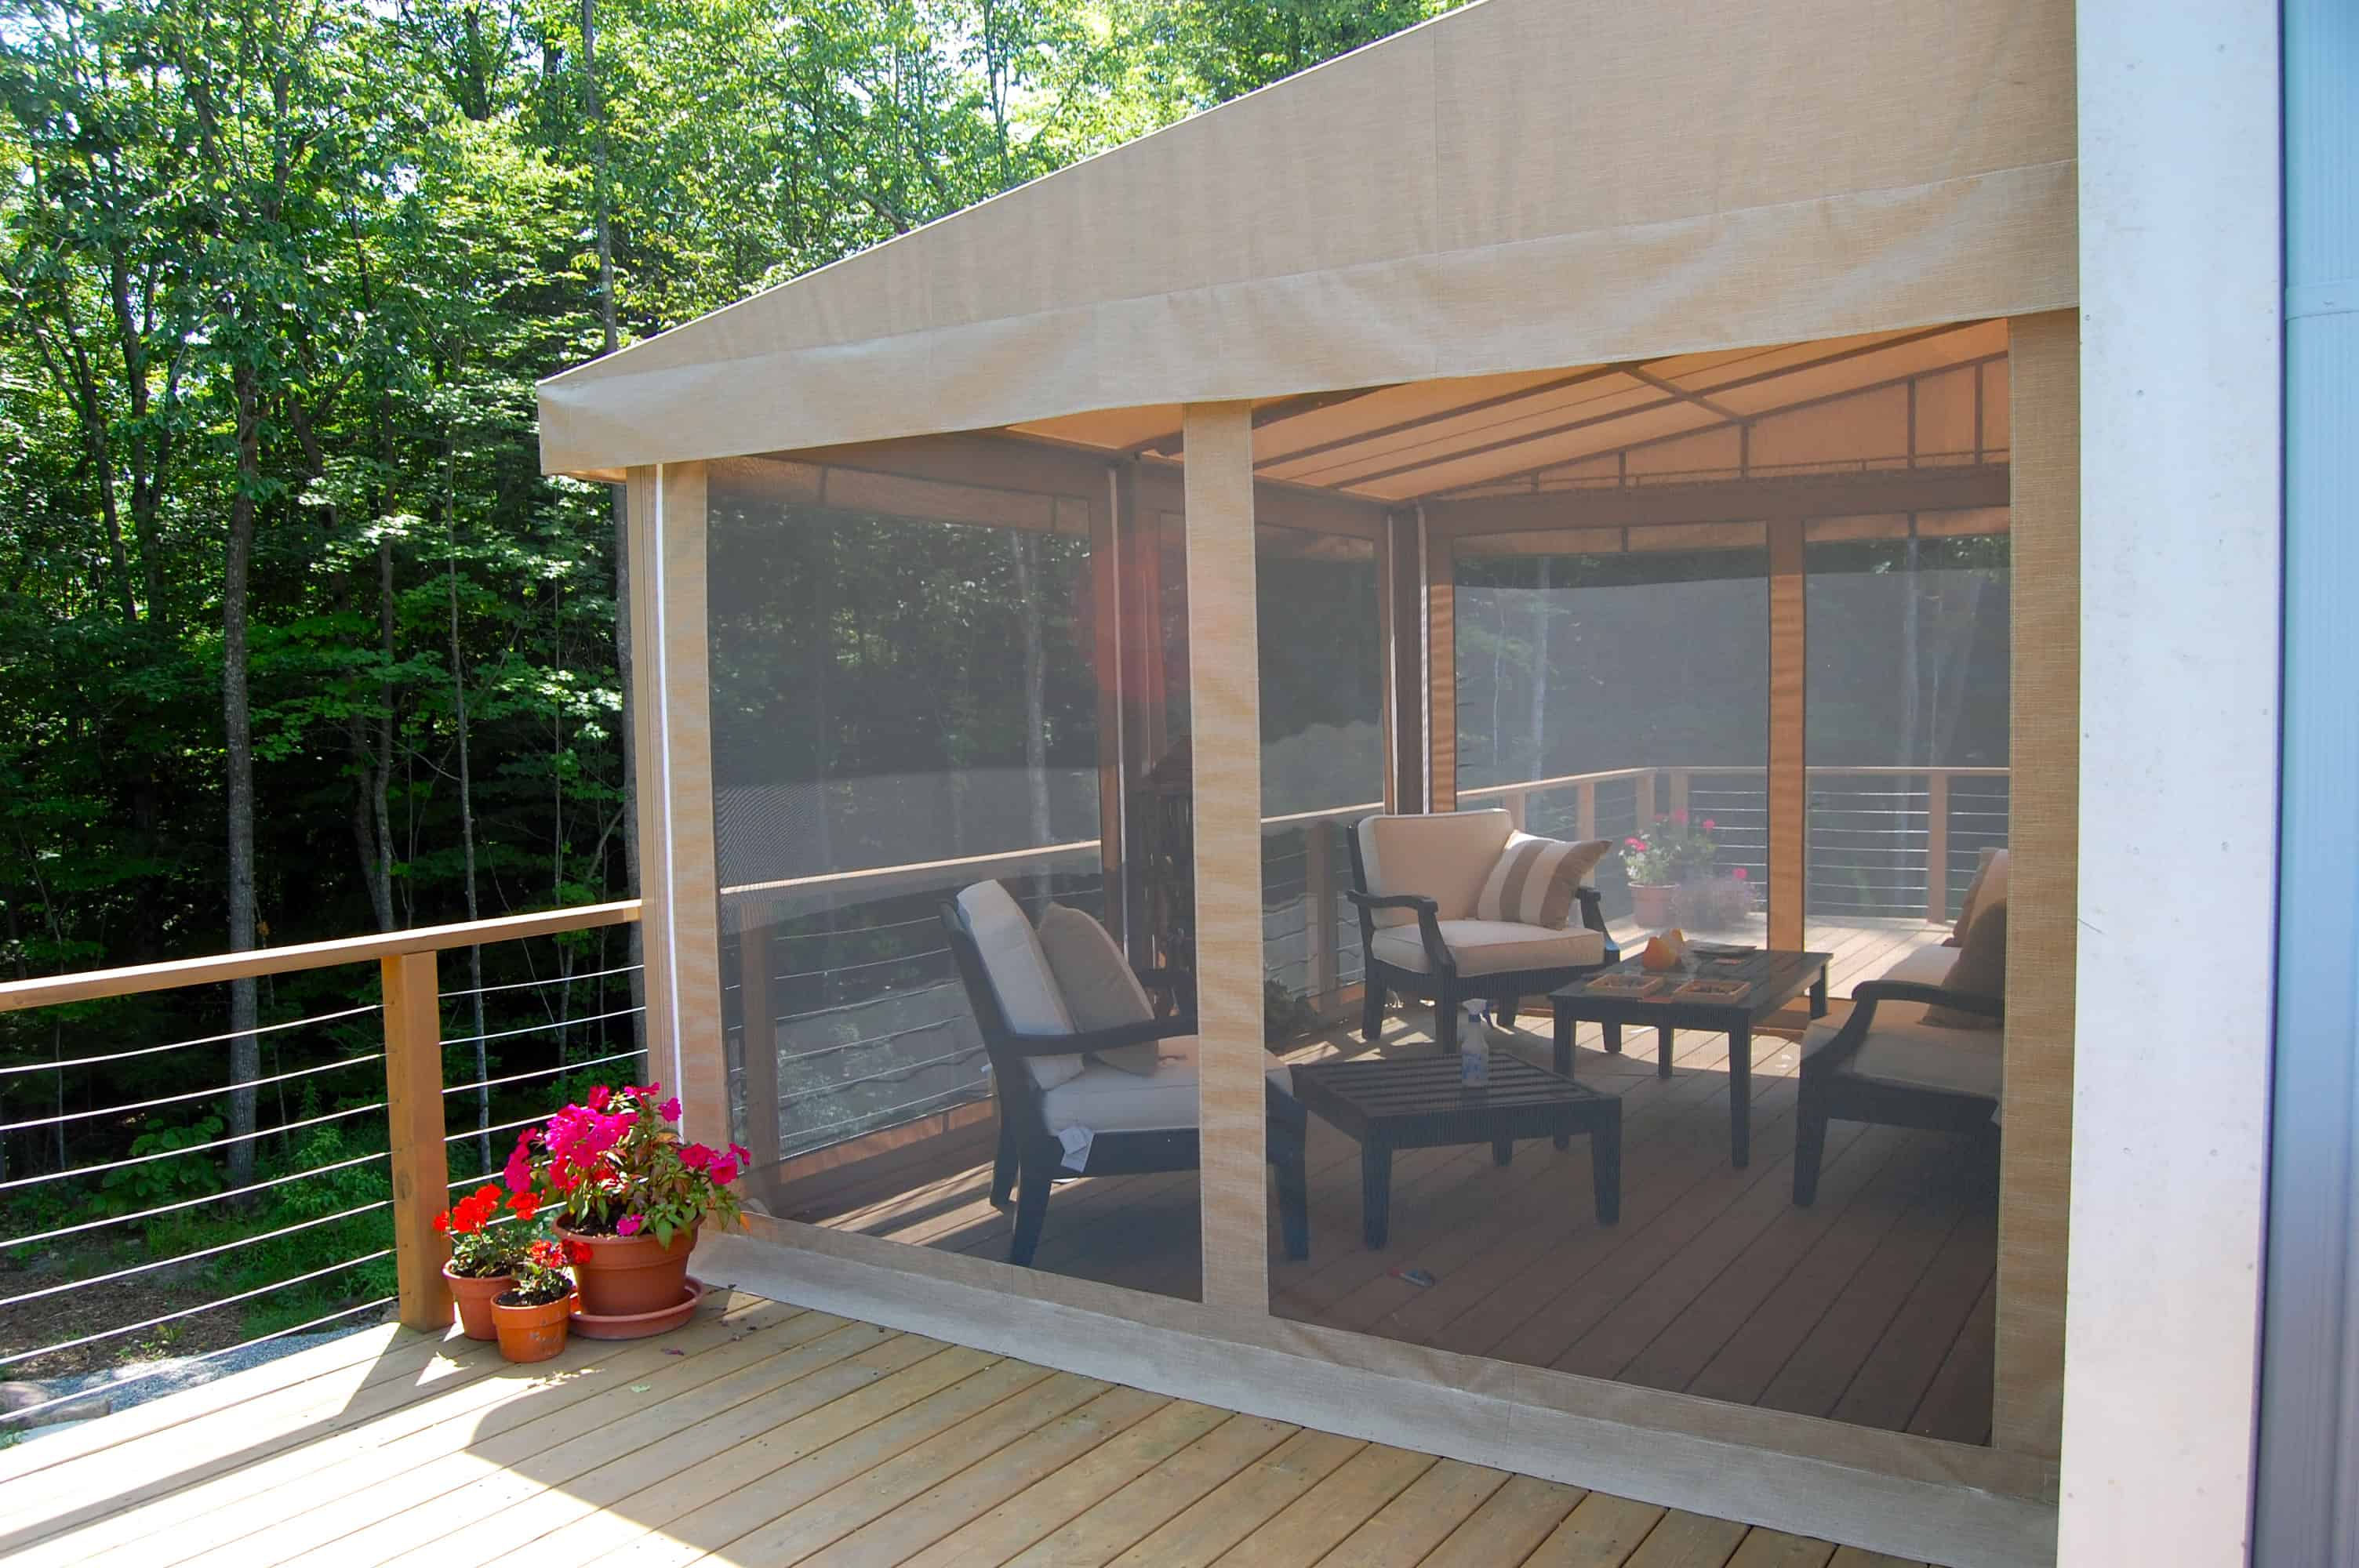 Retractable Awning With Bug Screen 28 Images Solar And